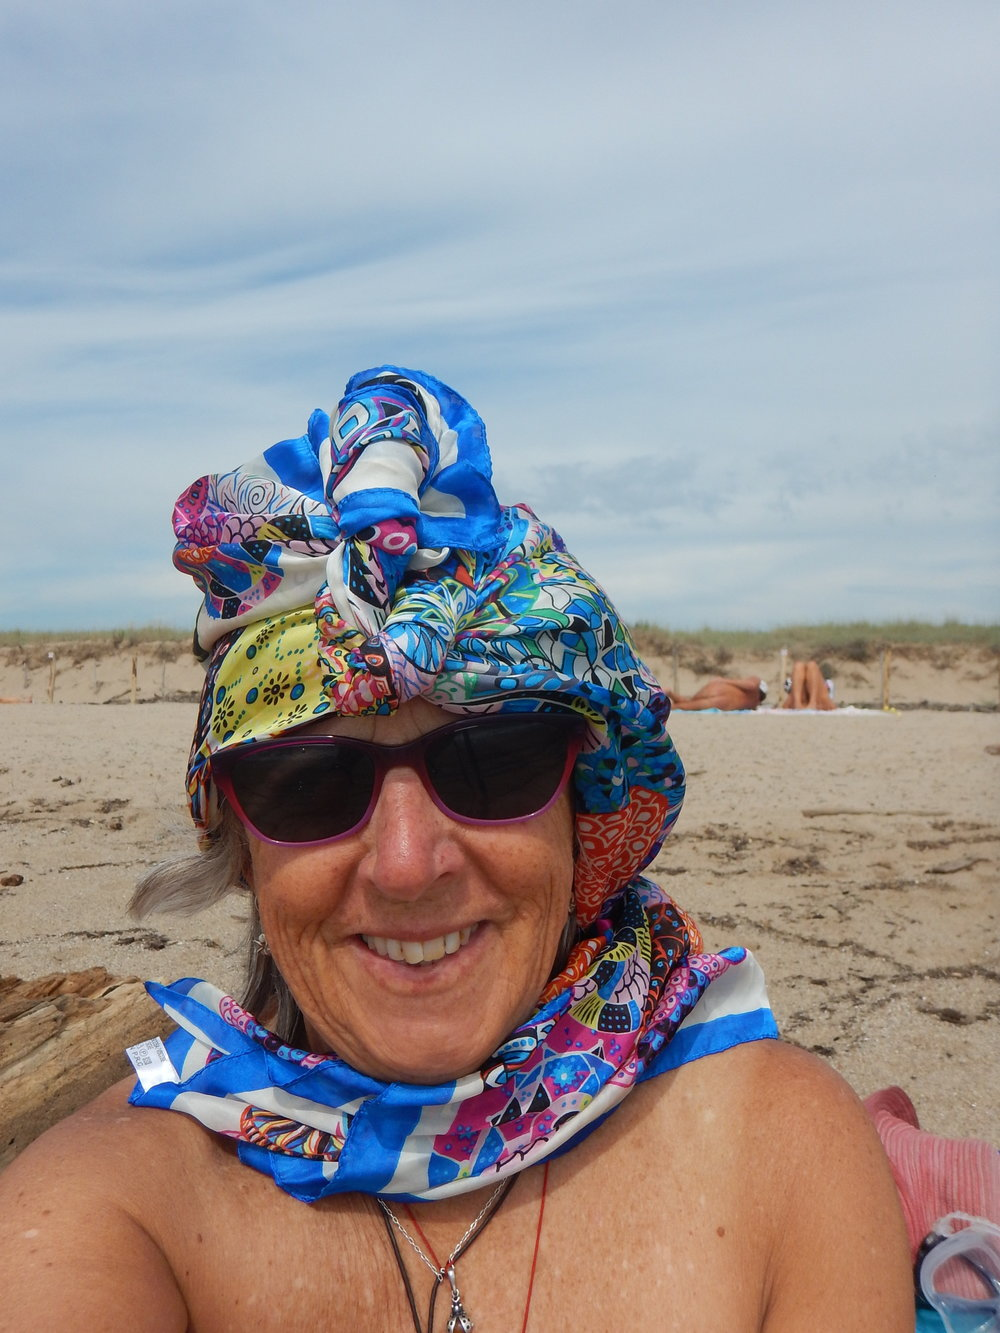 Tuareg style, with the wind like it was in the Sahara.